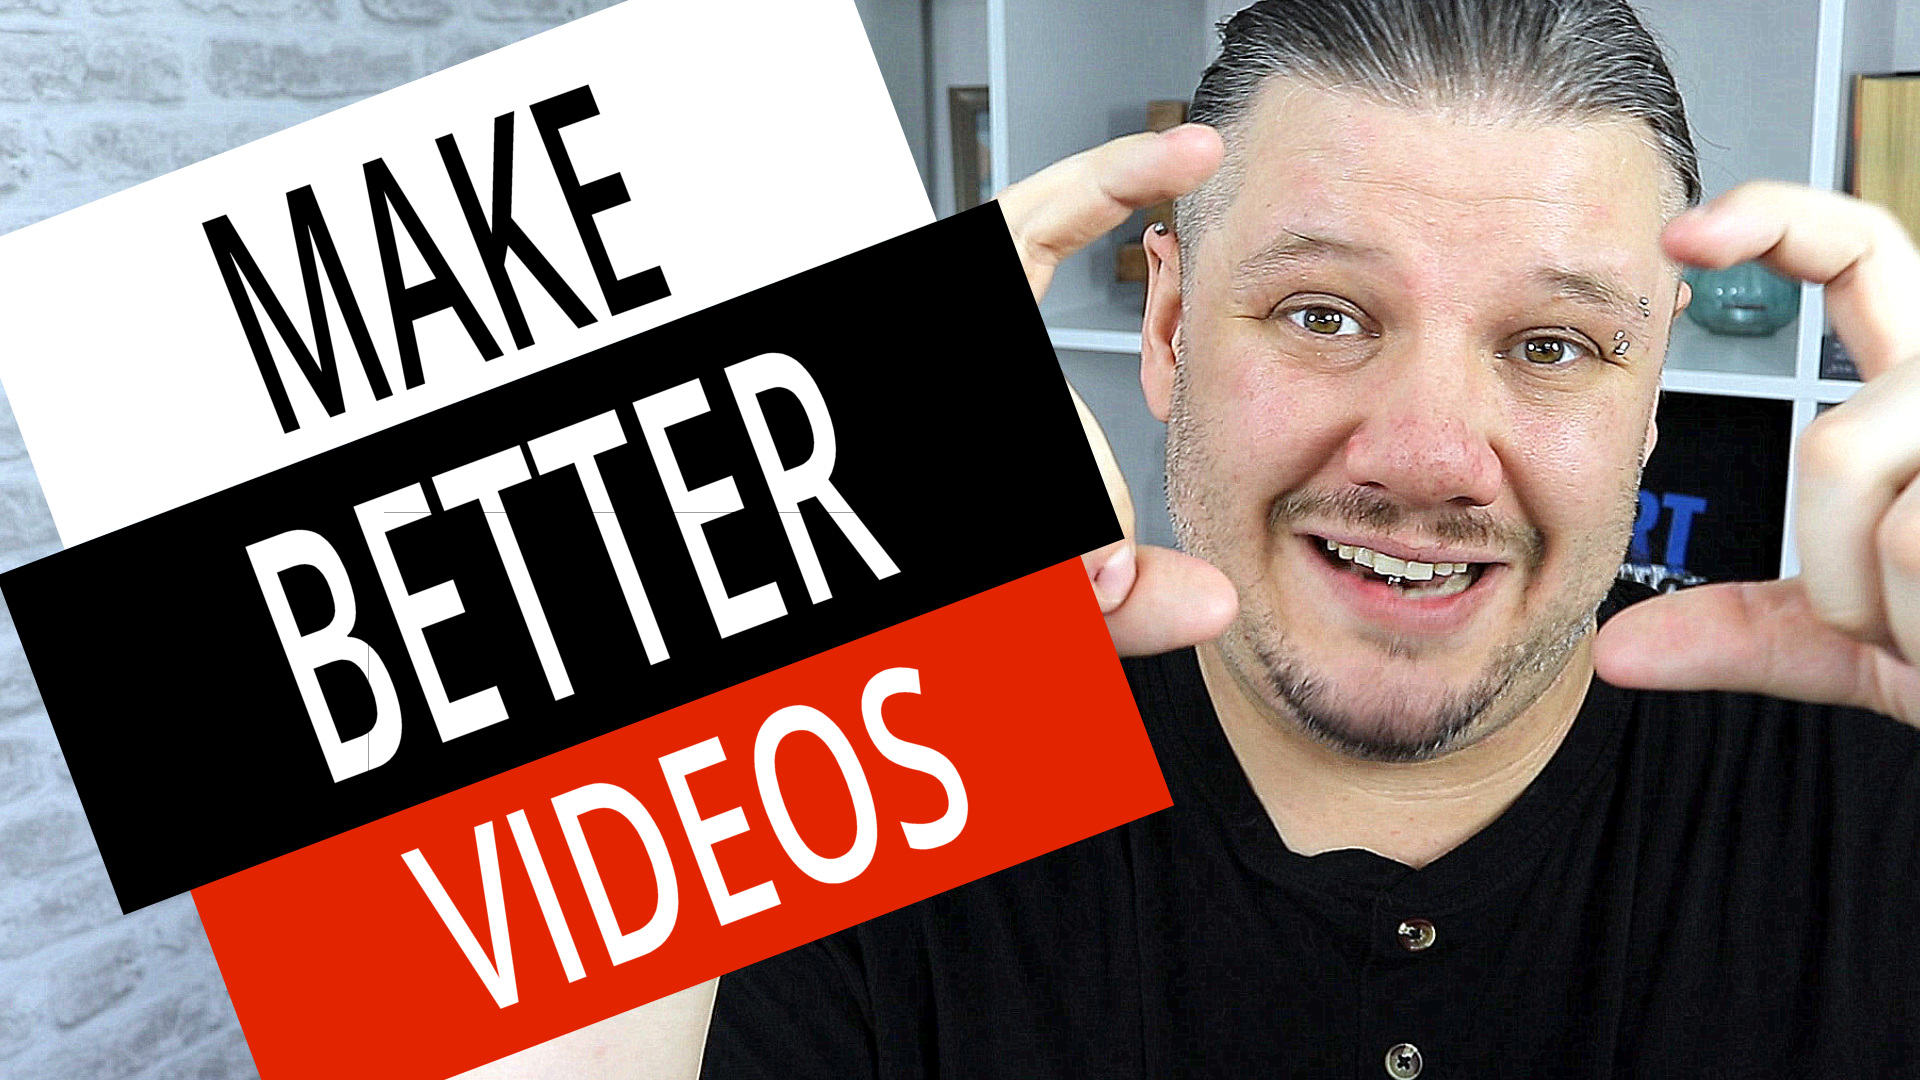 How To Improve Video Quality for YouTube - Make Better Videos, how to improve video quality for YouTube,how to improve video quality,how to improve video quality on youtube,improve video quality,make better videos,how to improve youtube video quality,how to make better youtube videos,improve youtube video quality,imprive video quality,make better youtube videos,tips to make better youtube videos,enhance video quality,how to enhance video quality on youtube,how to make your youtube videos better,better audio for youtube videos